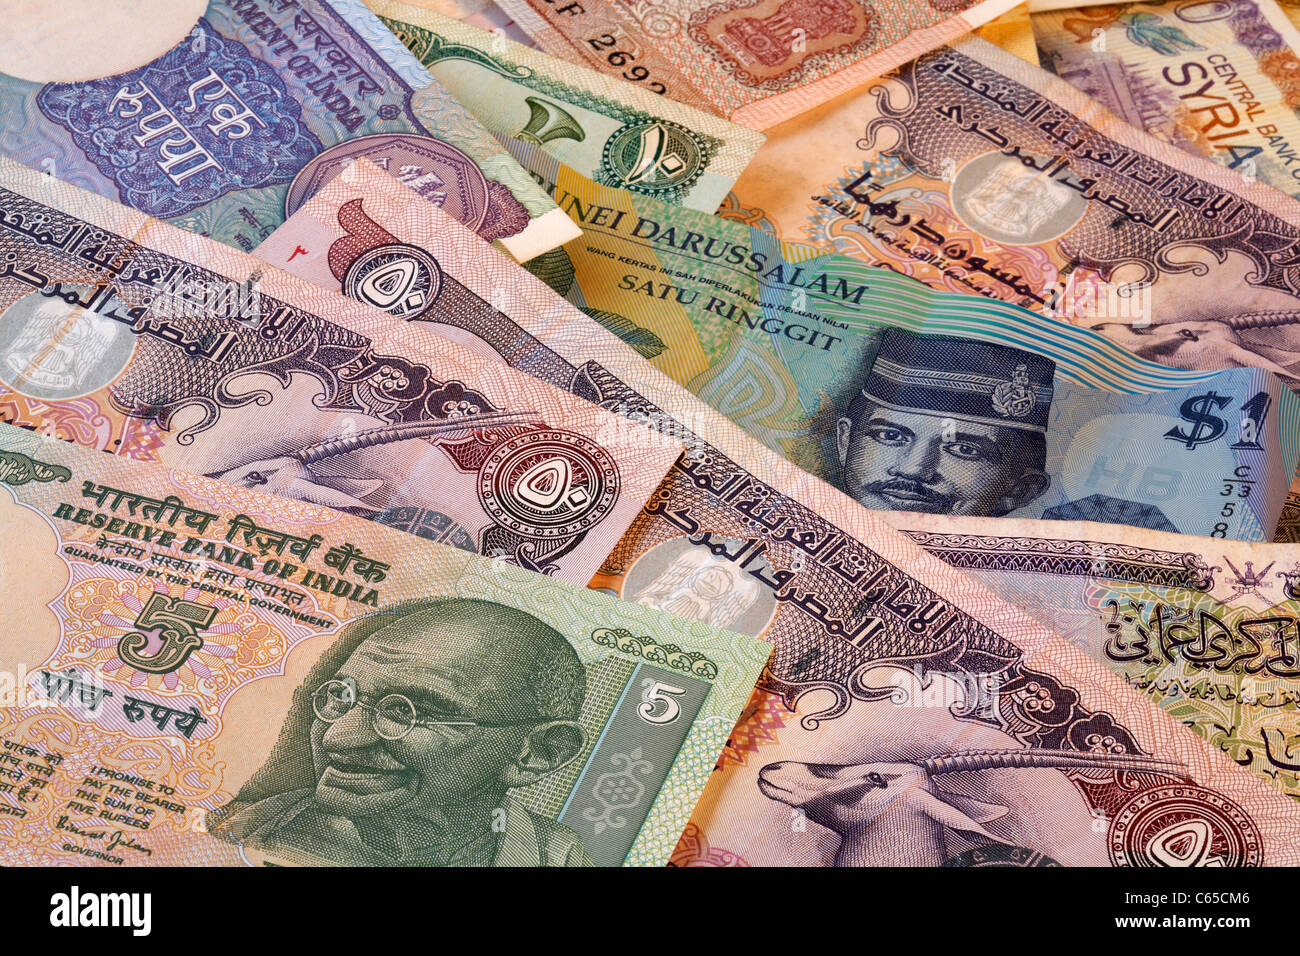 Currency Bank Notes India and Arabic Countries including Brunei, United Arab Emirates, Oman, Syria - Stock Image